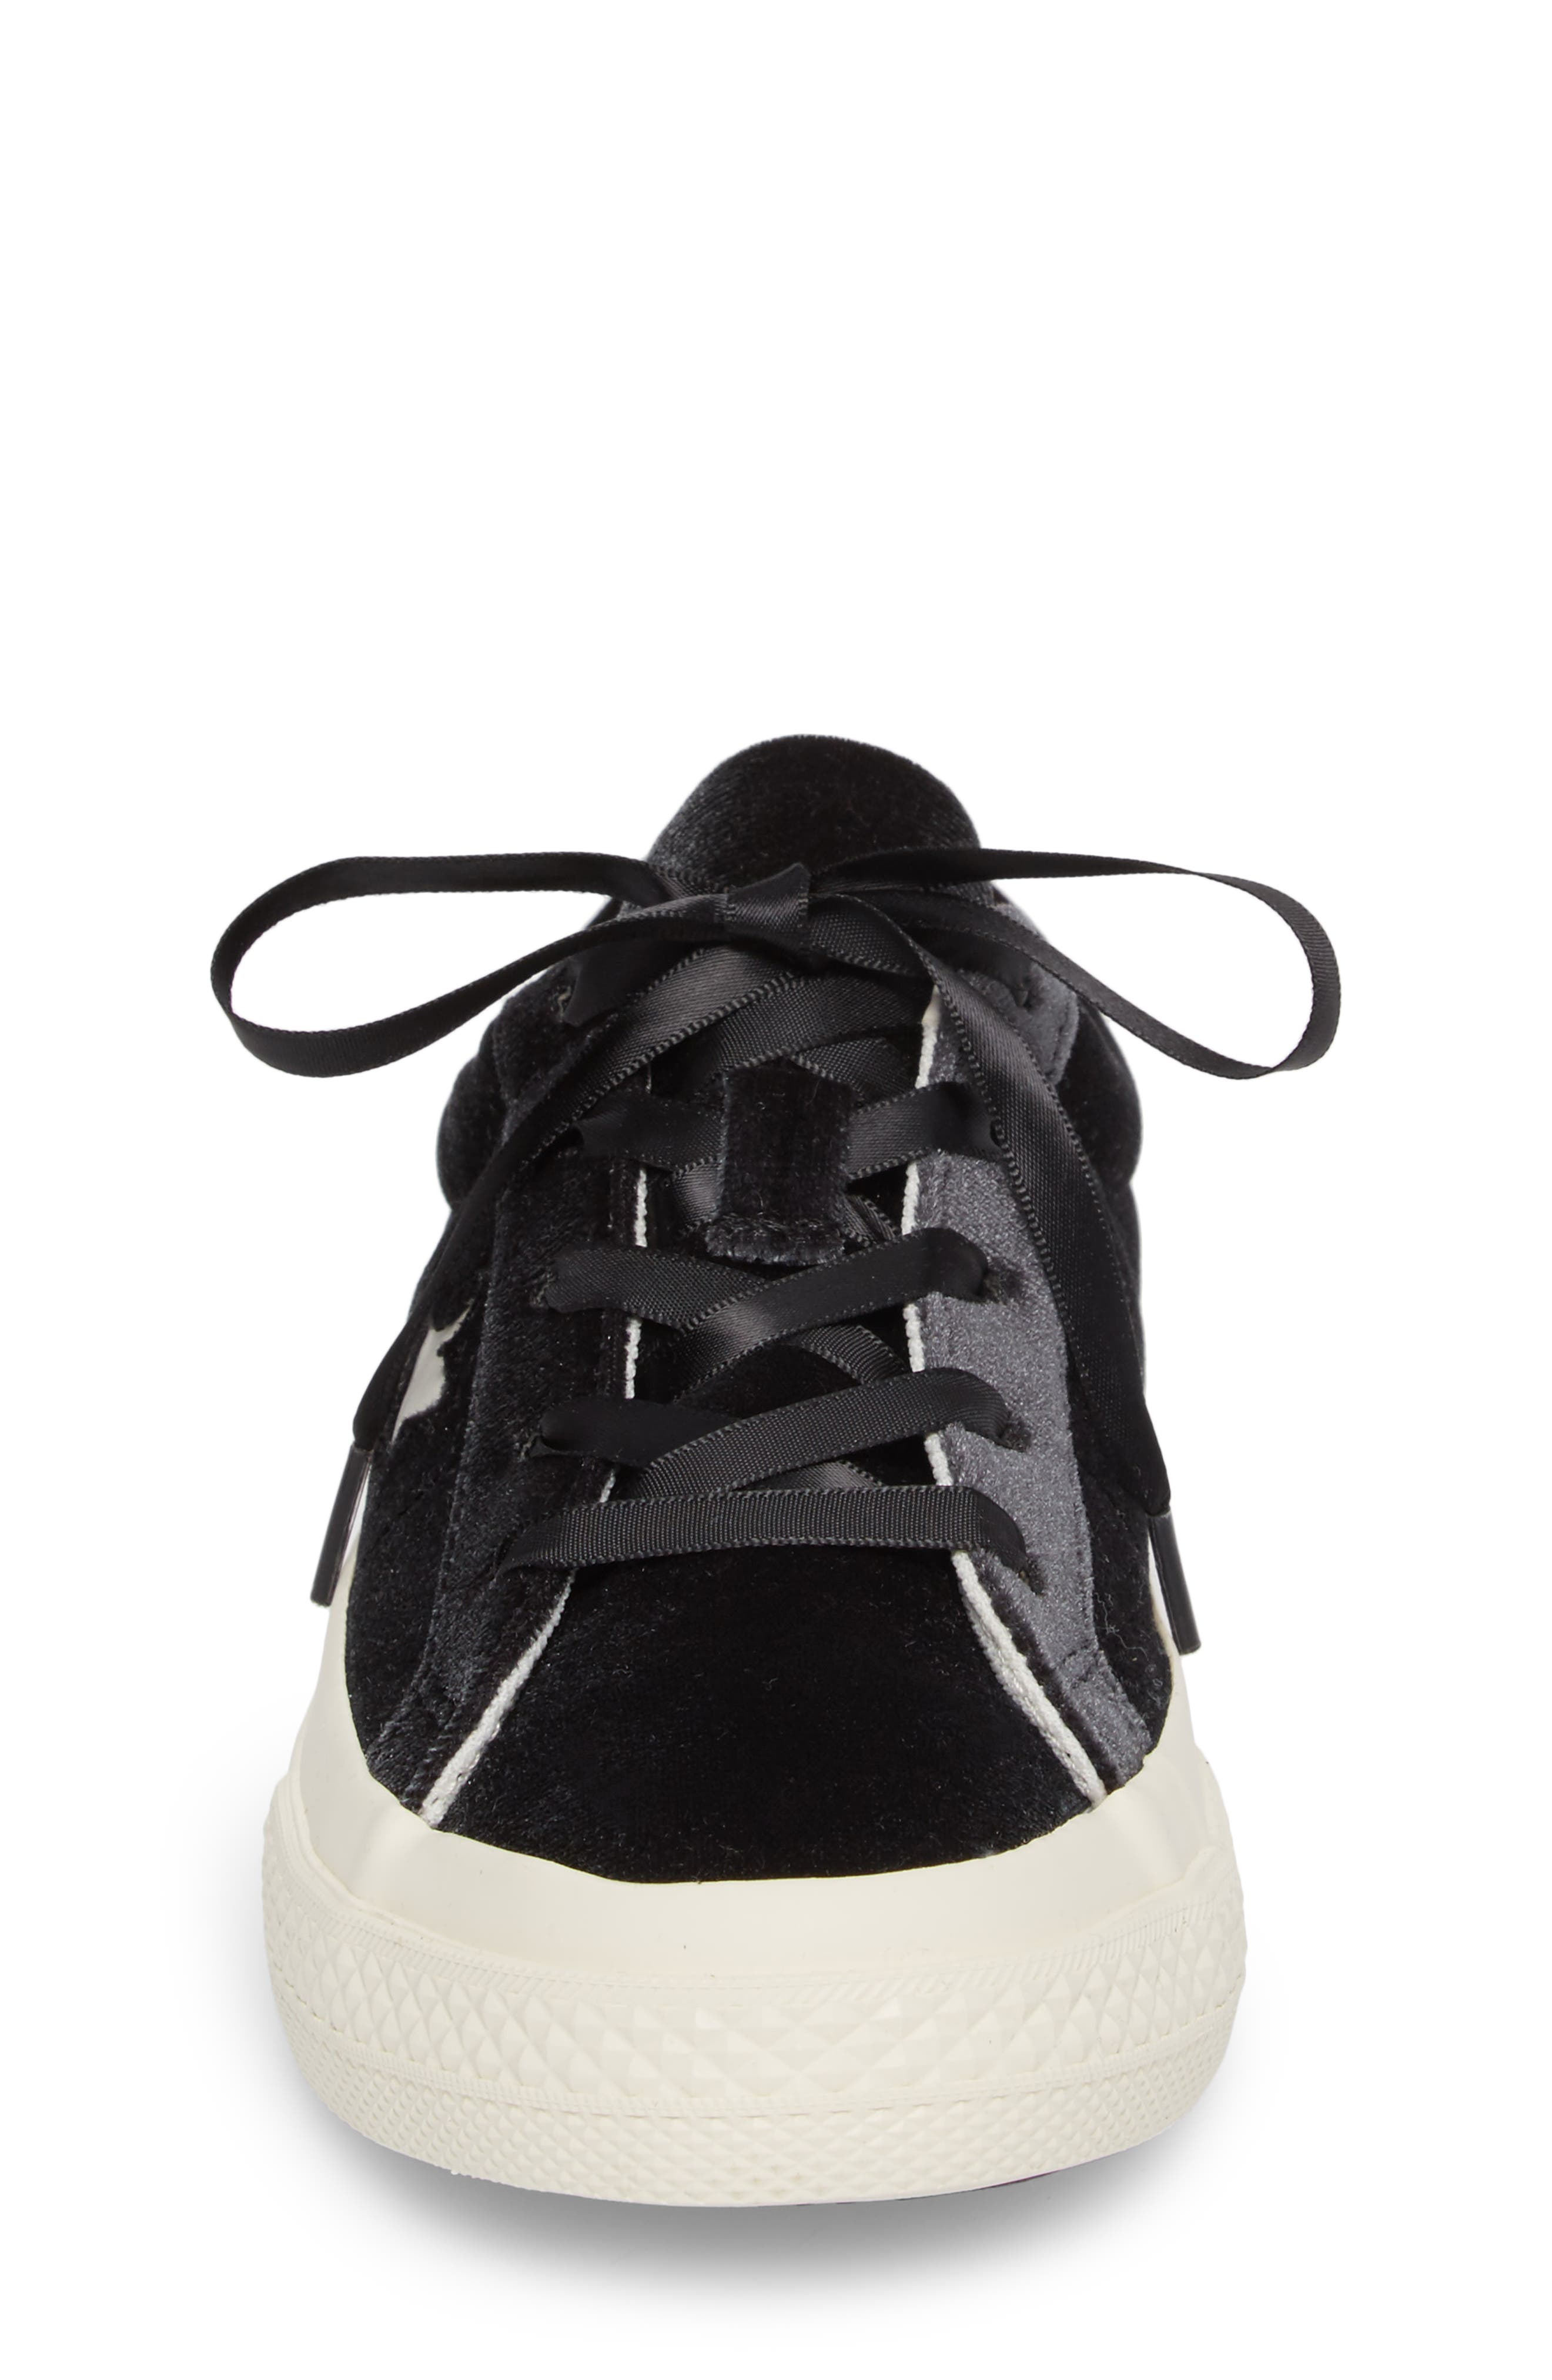 Chuck Taylor<sup>®</sup> All Star<sup>®</sup> One Star Velvet Platform Sneaker,                             Alternate thumbnail 4, color,                             001